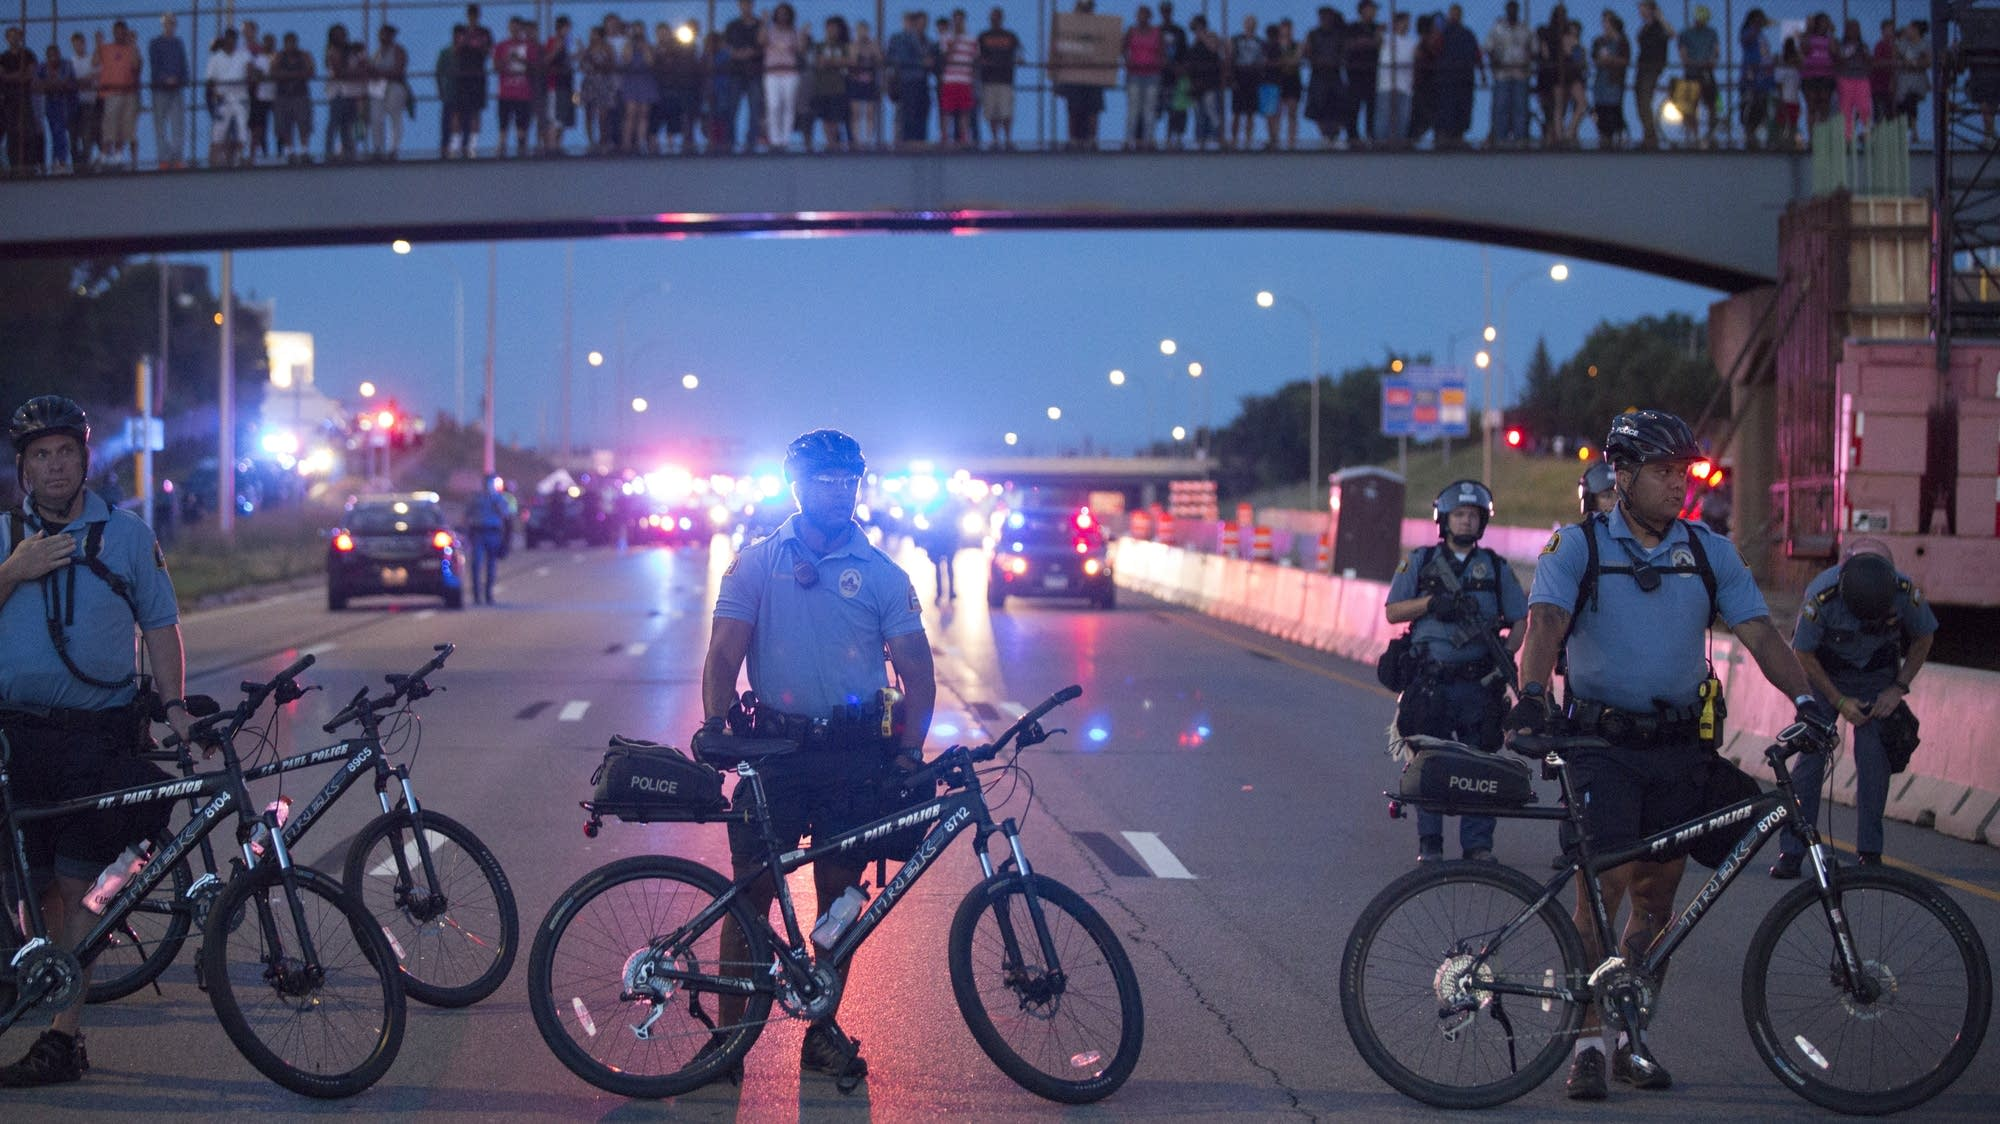 Bike police hold a line while protesters watch.